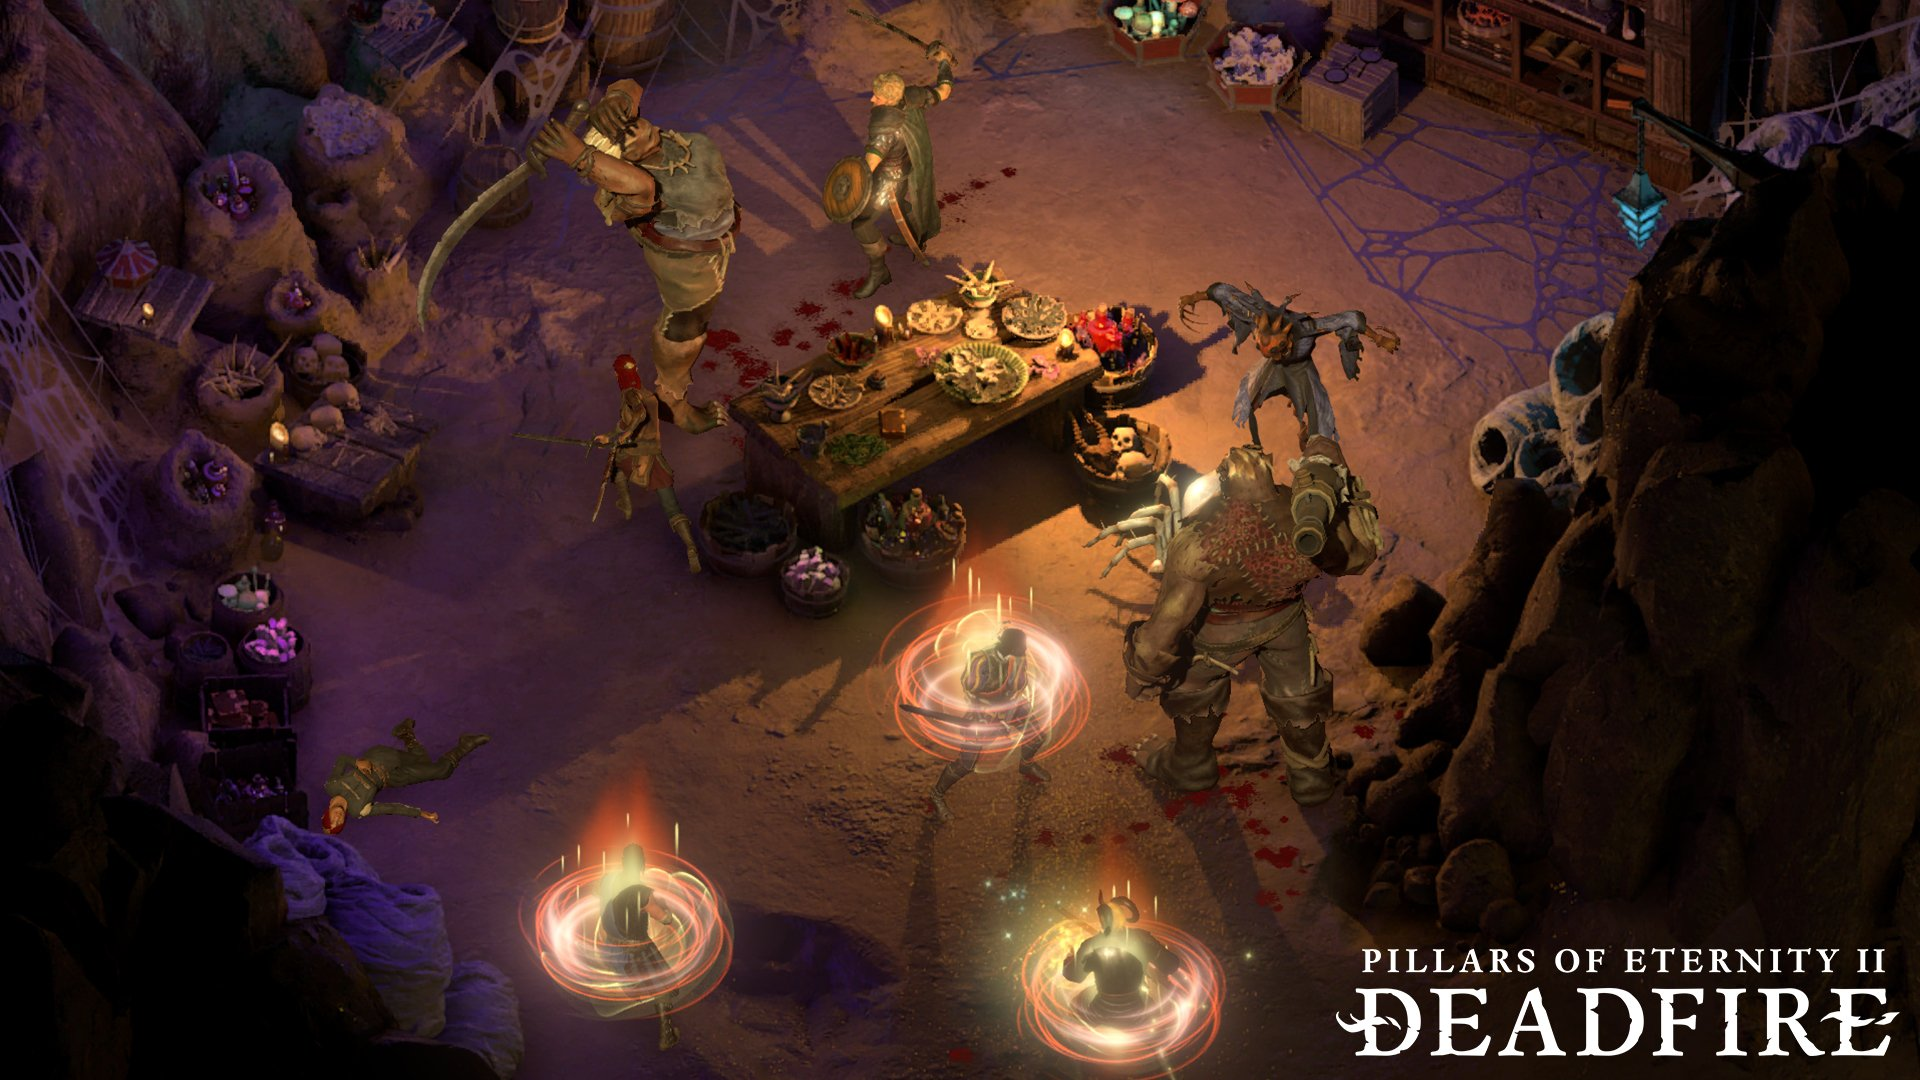 Pillars Of Eternity Background: Pillars Of Eternity II: Deadfire HD Wallpaper